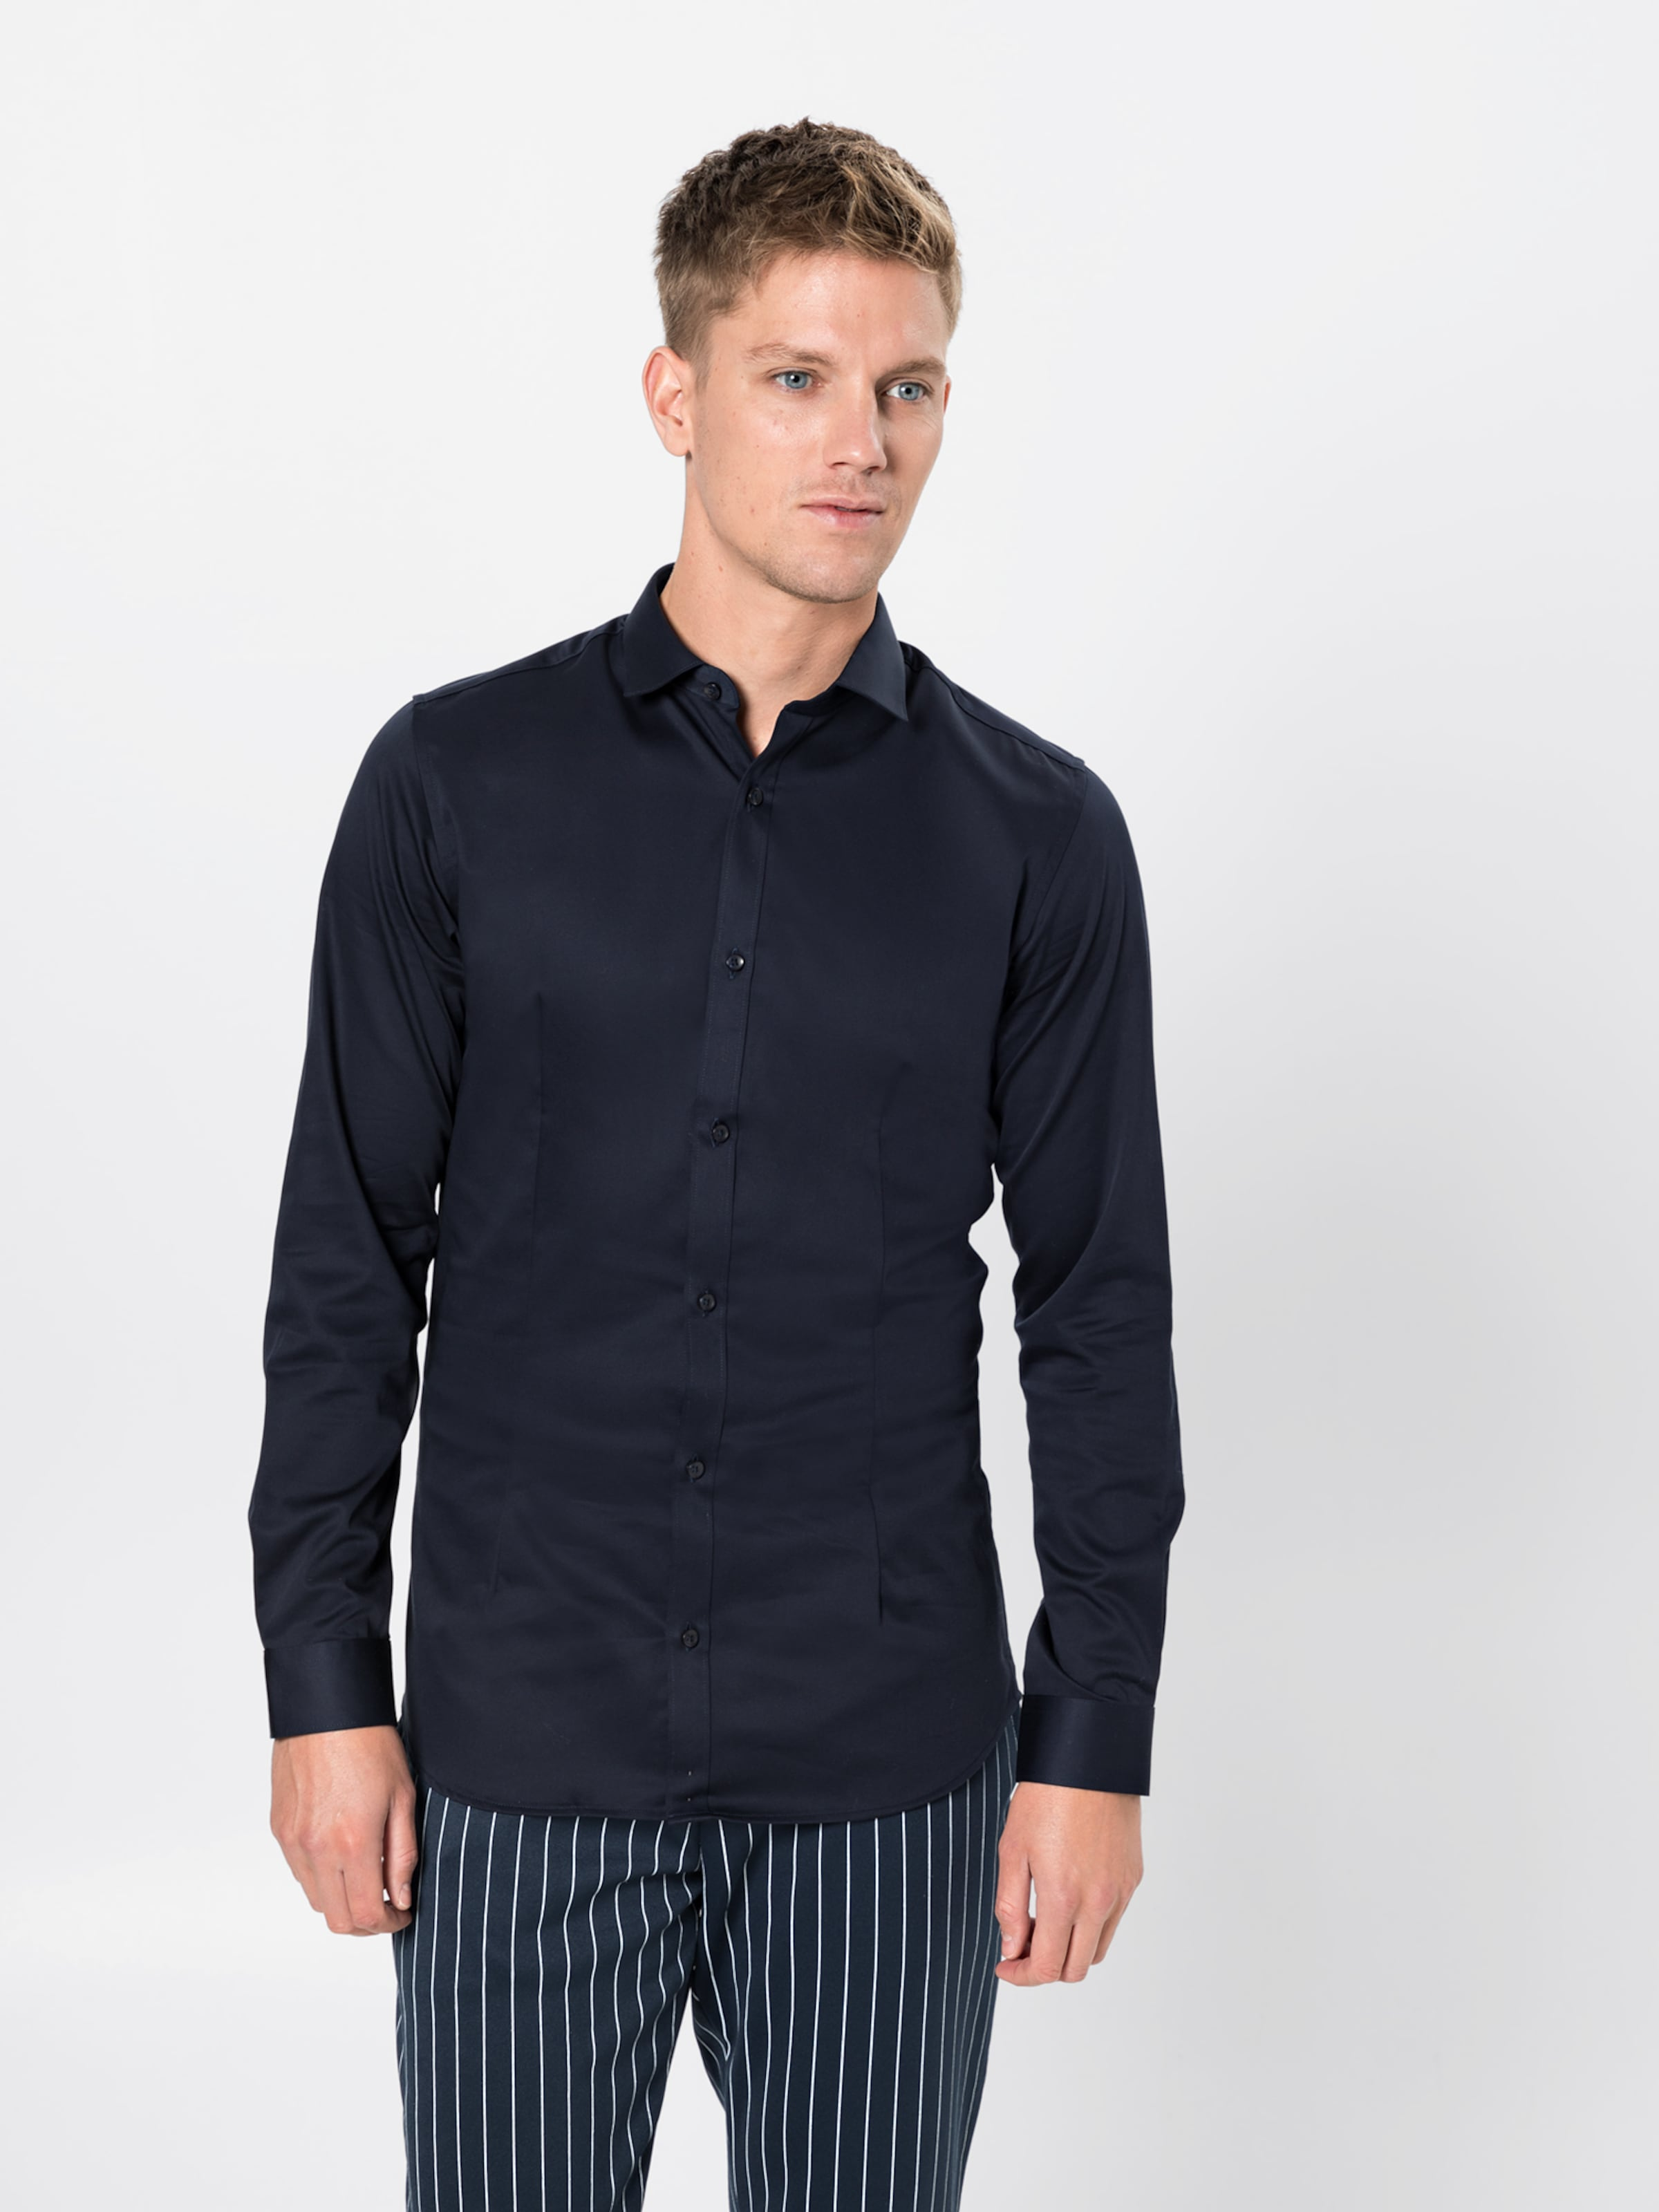 s Noos' Jackamp; 'jjprparma En Business Chemise Bleu Marine Shirt L Jones Tlc13JuFK